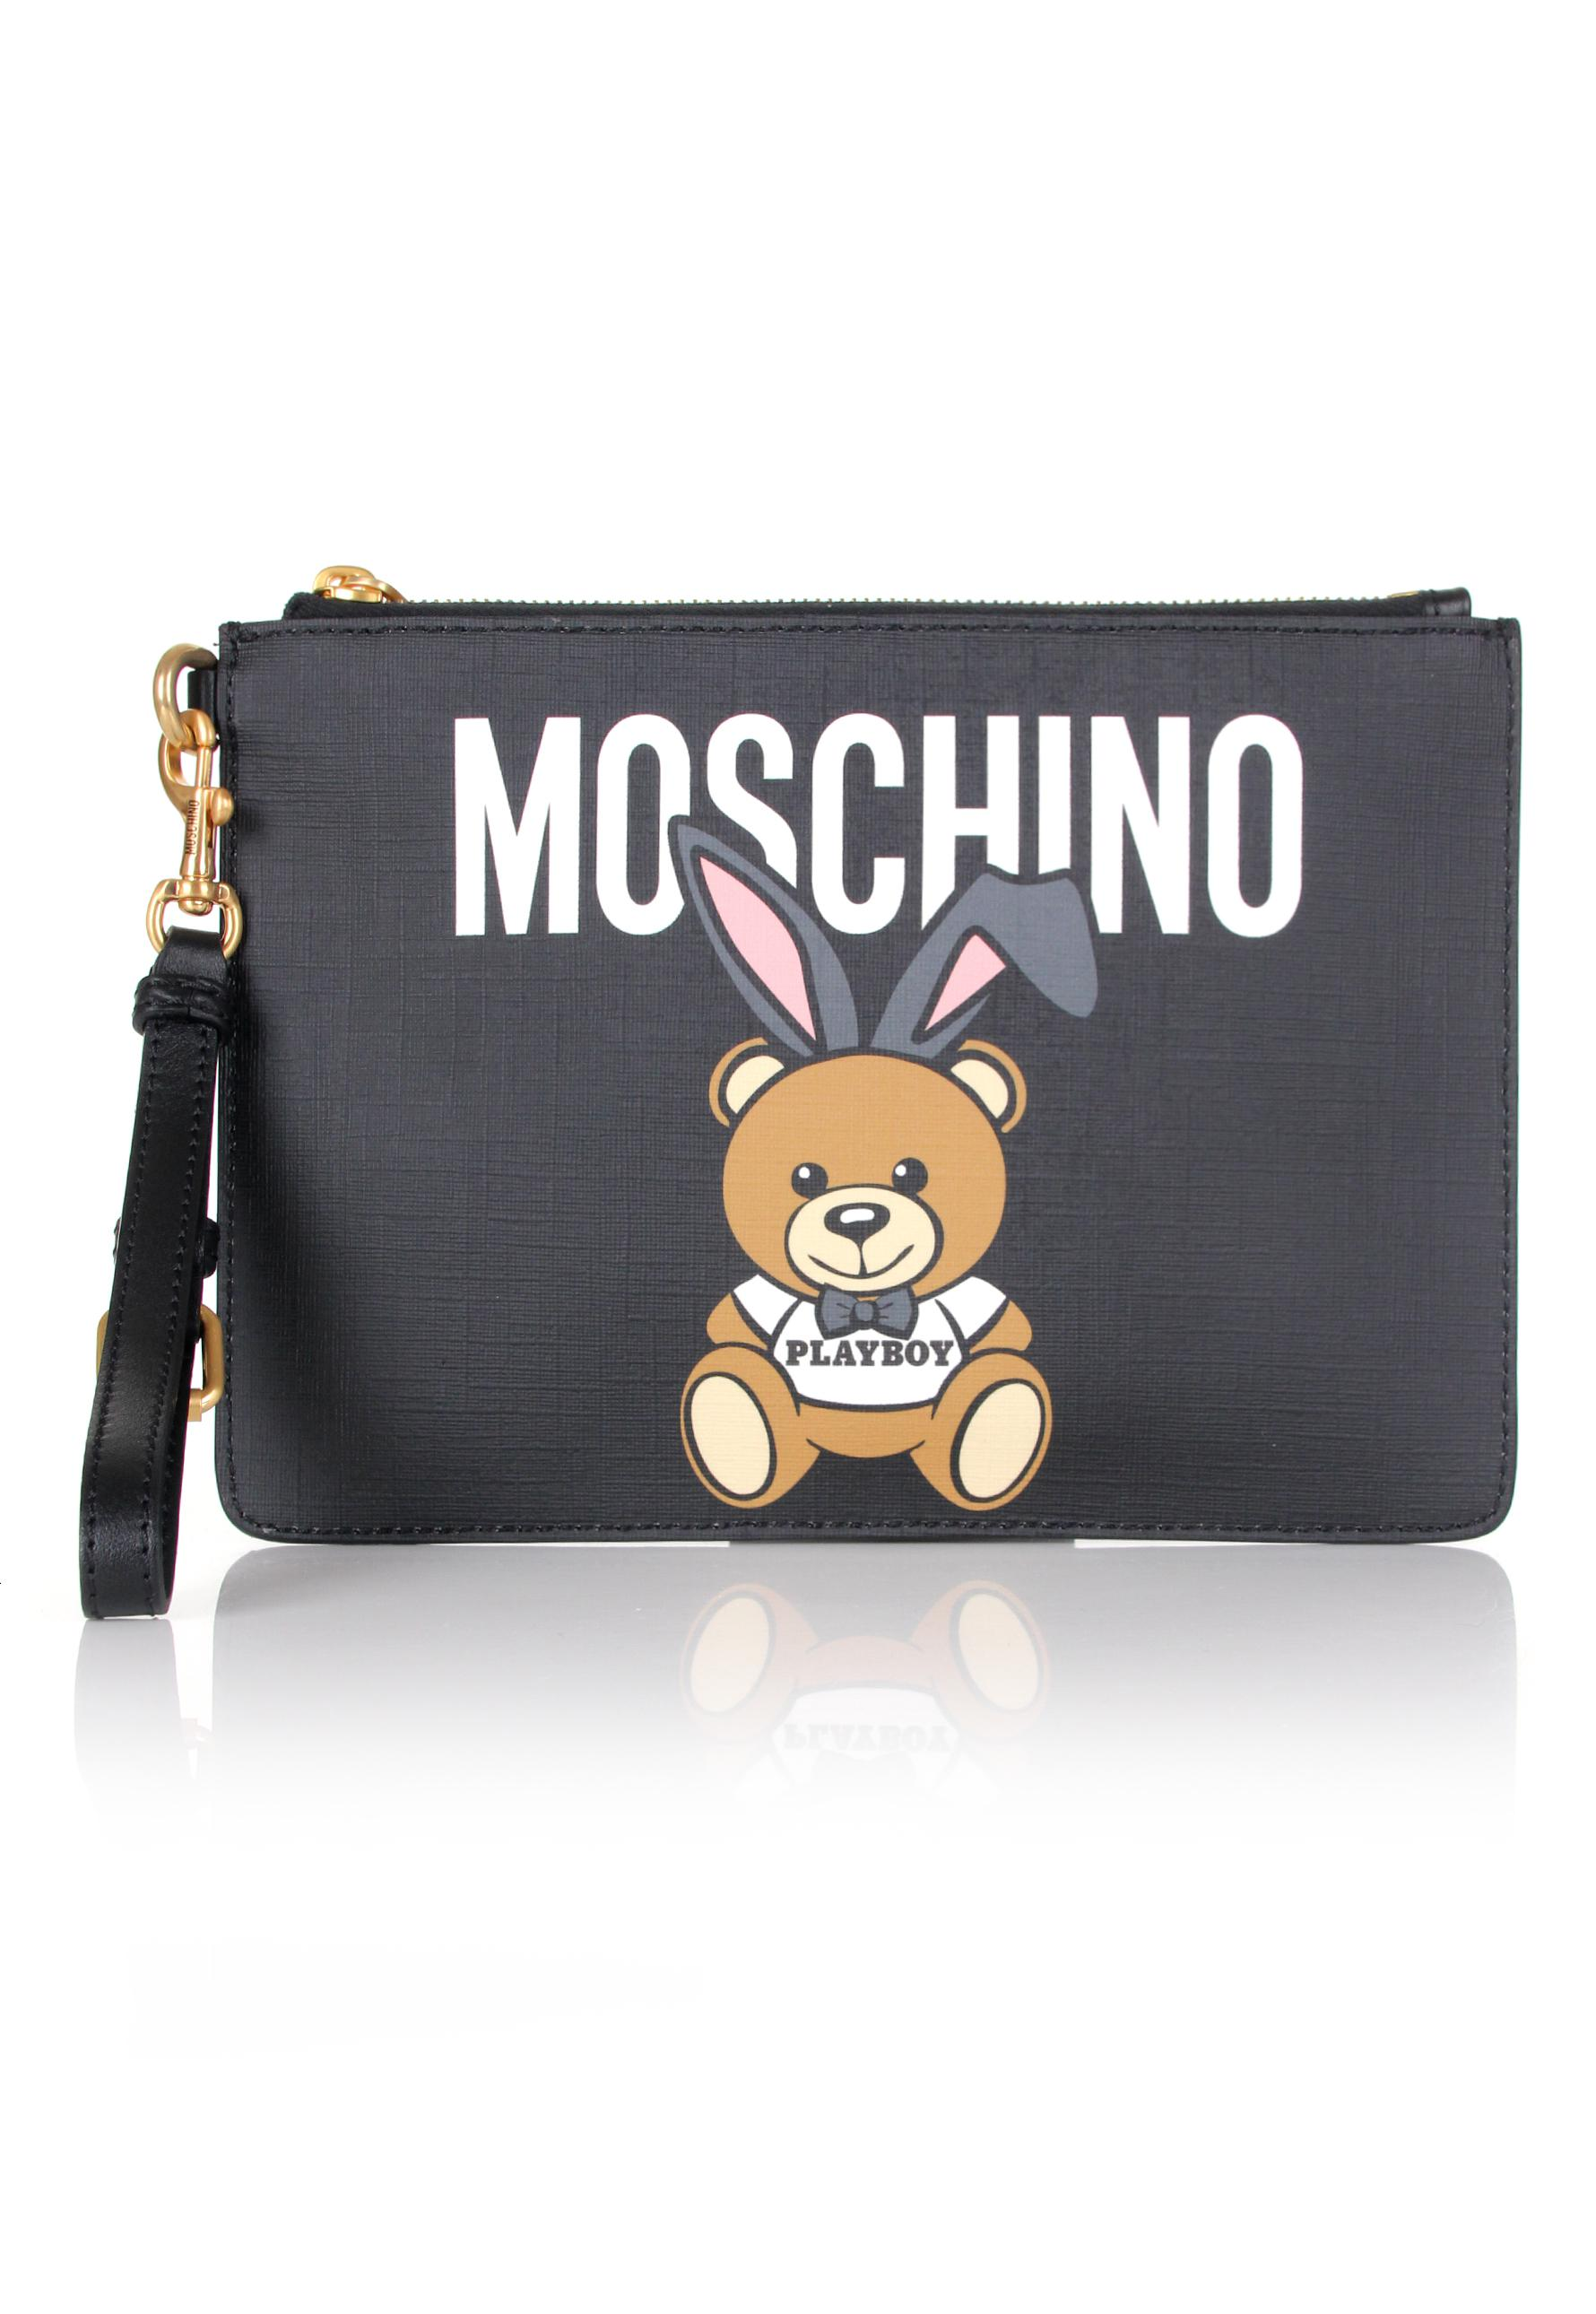 Moschino Playboy Teddy clutch - Black KHJOEA0Jwf